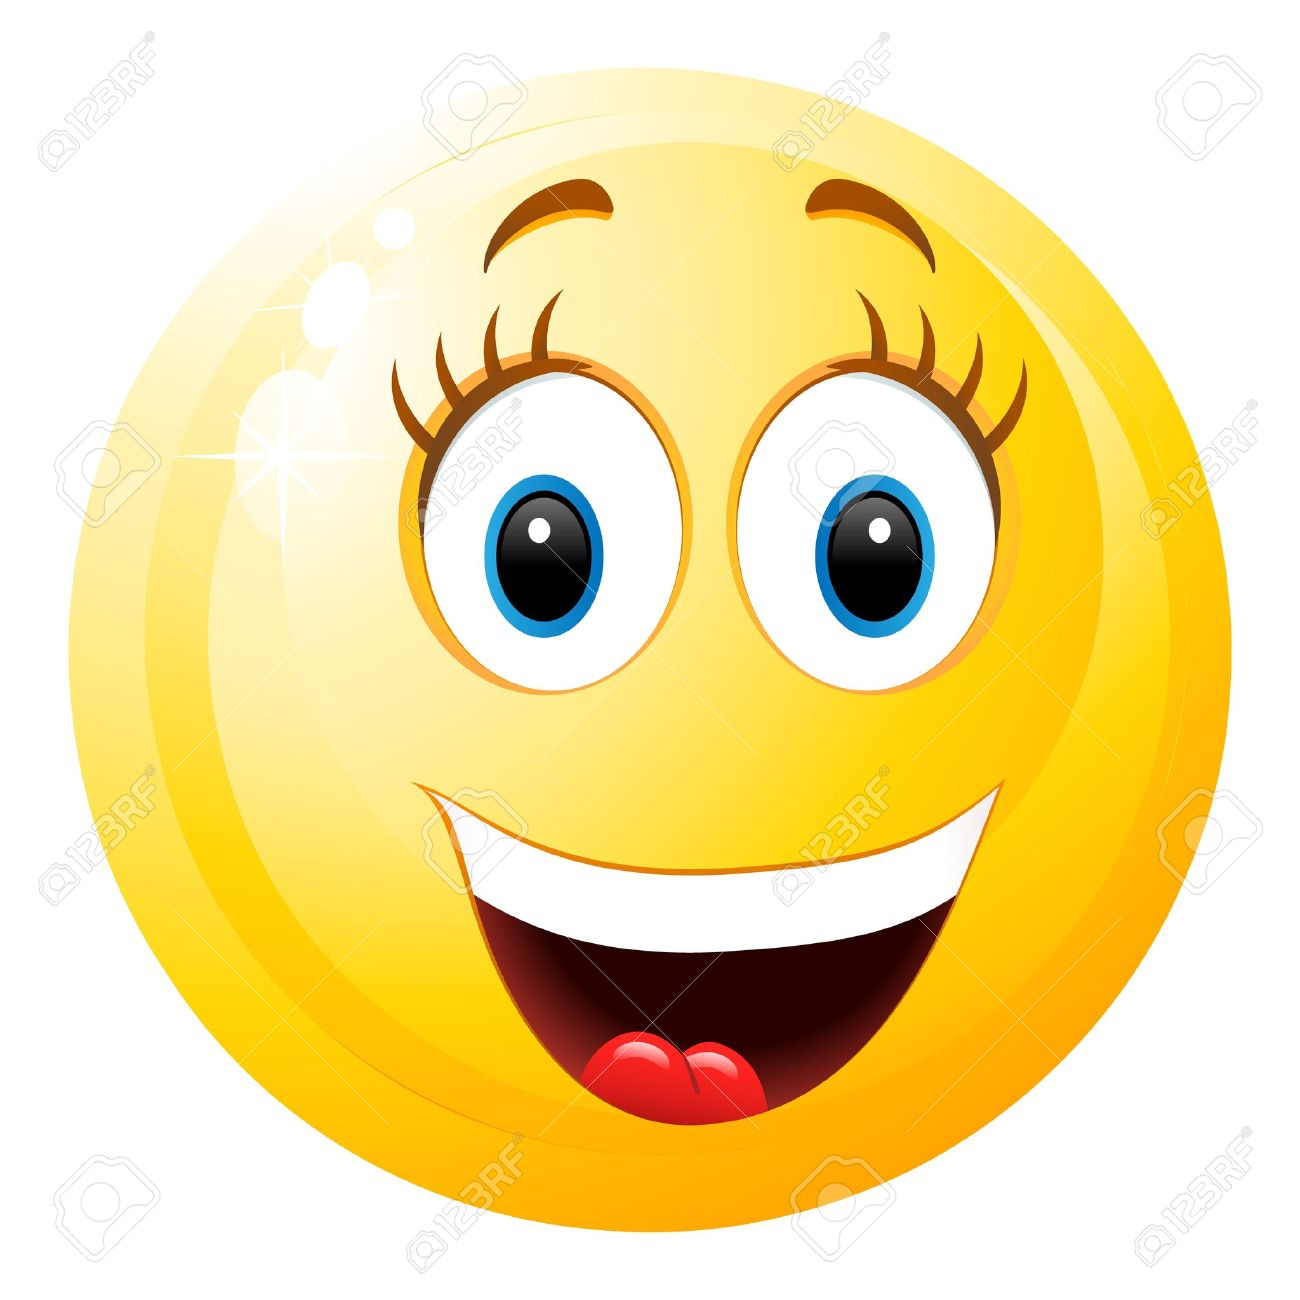 Free Smiley Face Download Free Clip Art Free Clip Art On